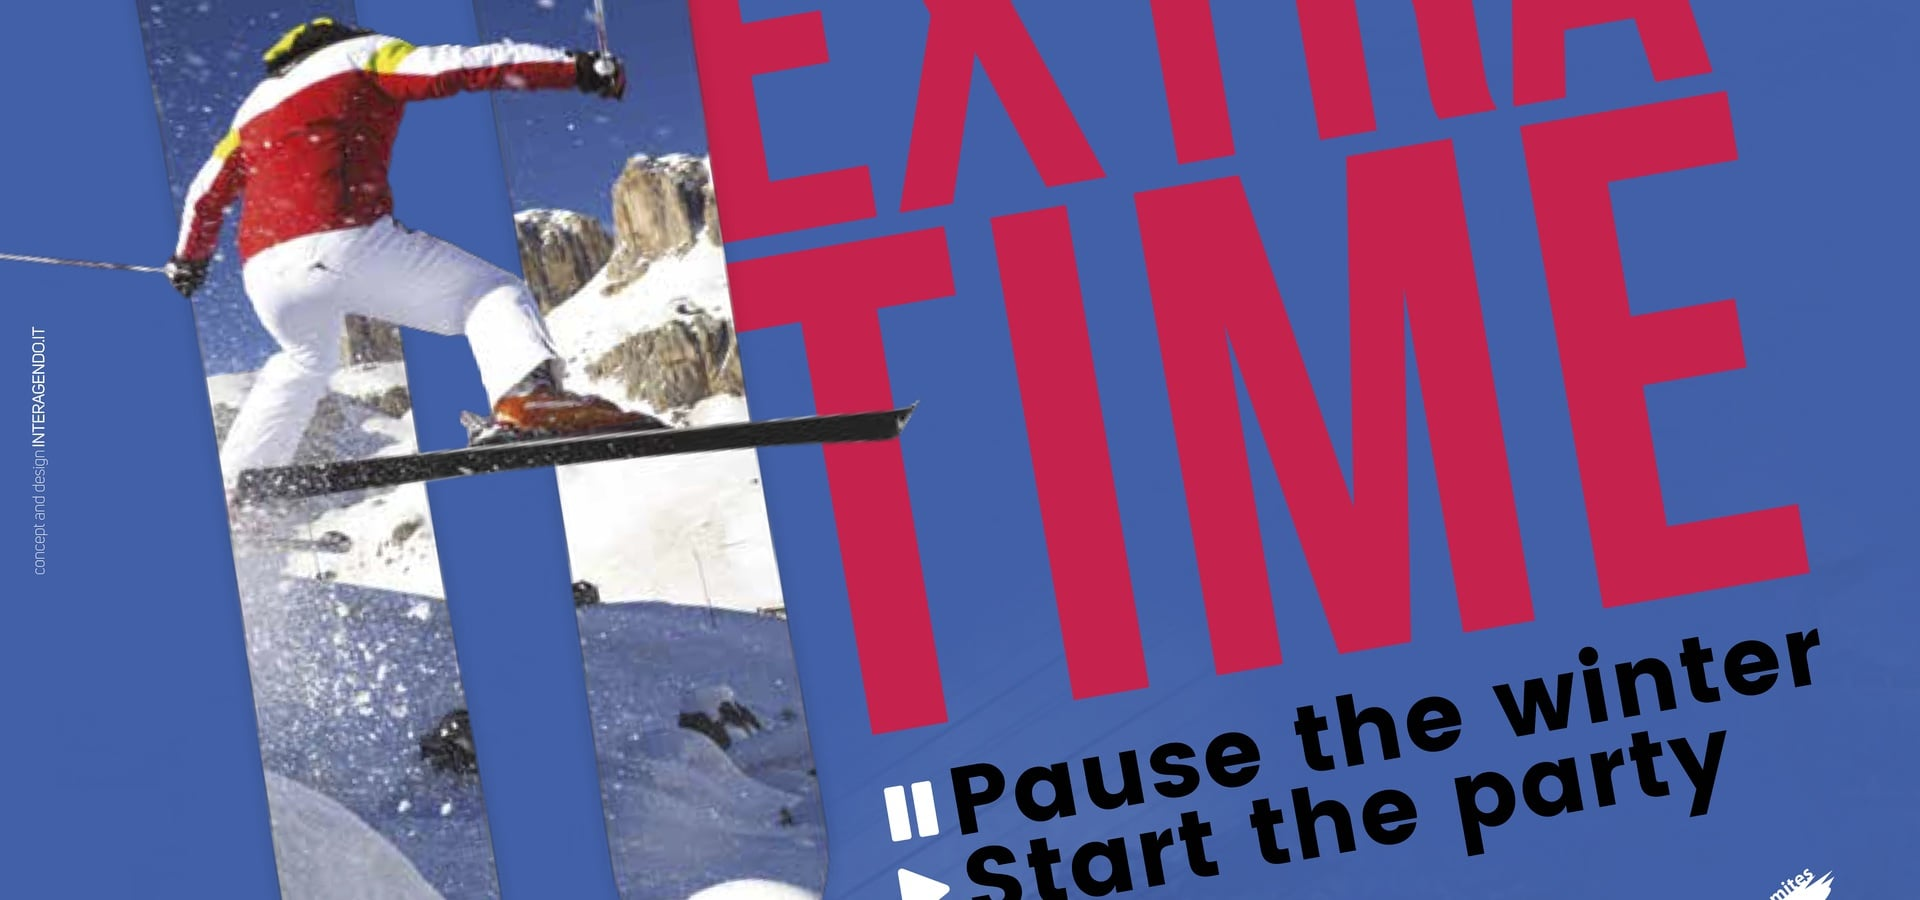 EXTRA TIME - NON STOP SKIING AND START THE PARTY